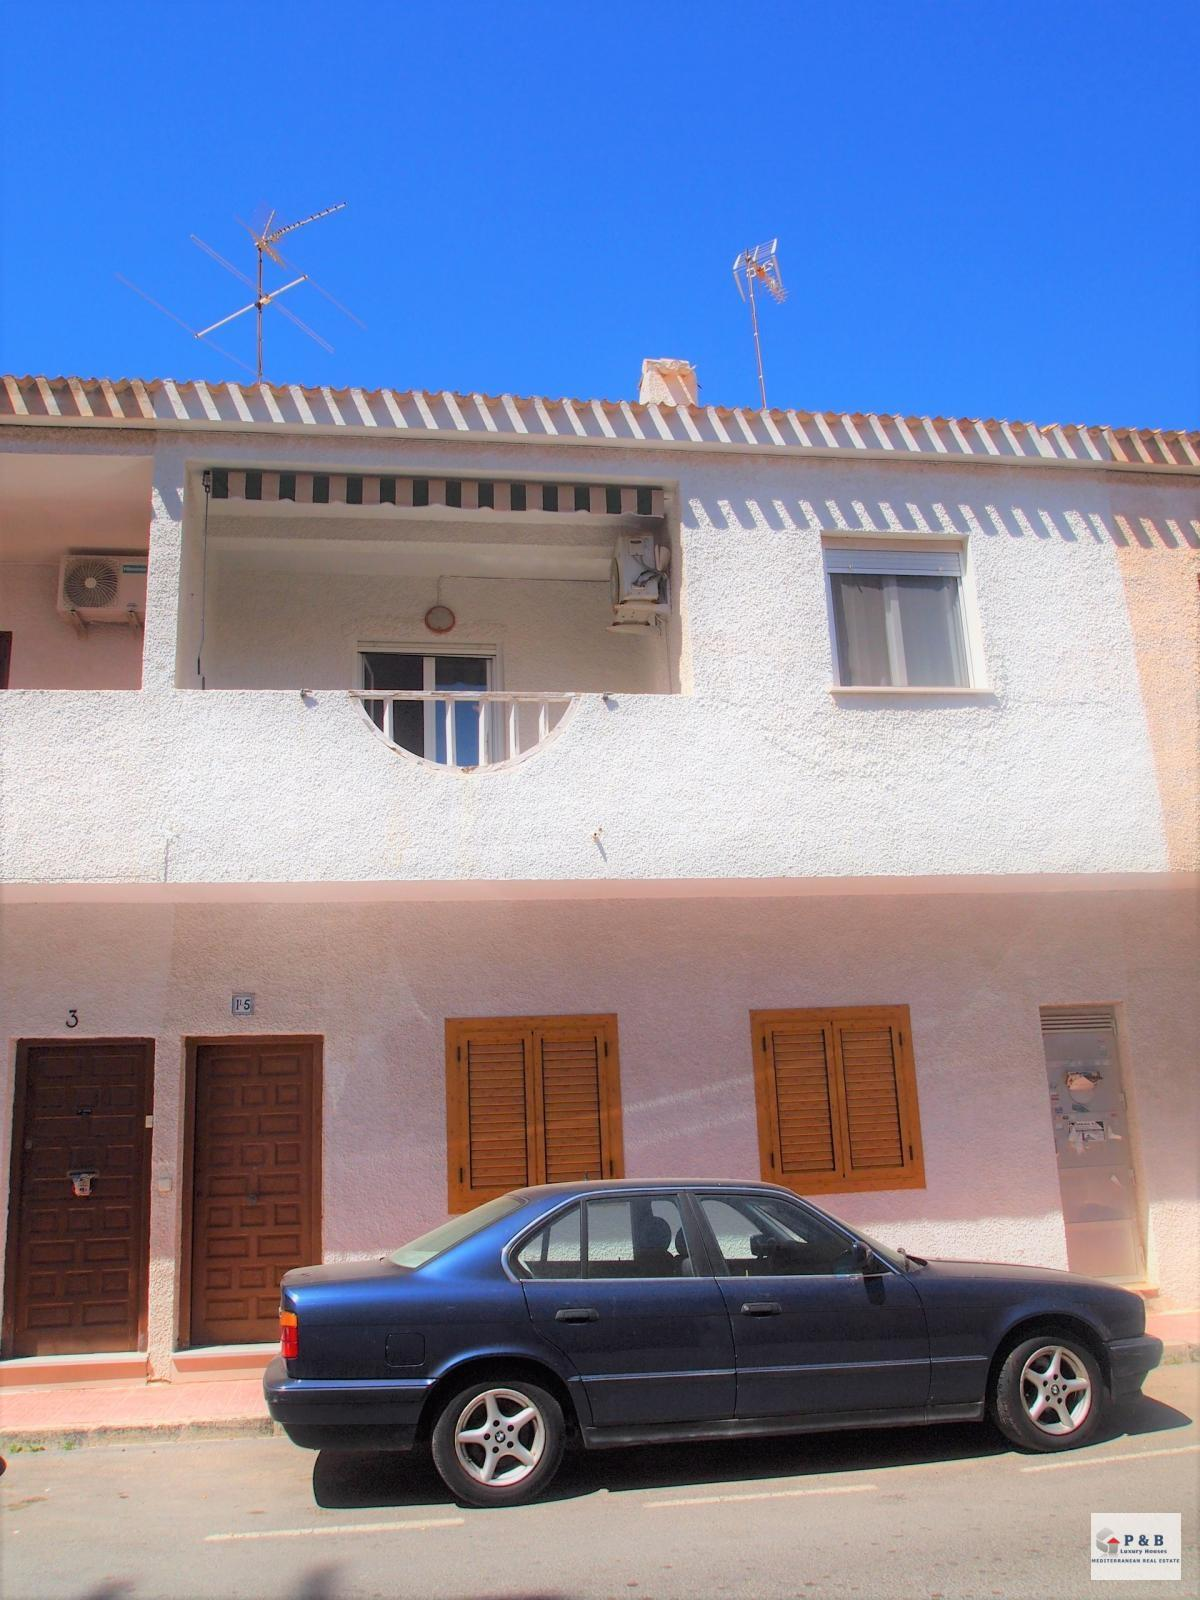 Bungalow for sale in Playa del Acequion (Torrevieja), 59.900 € (Ref.: 981)